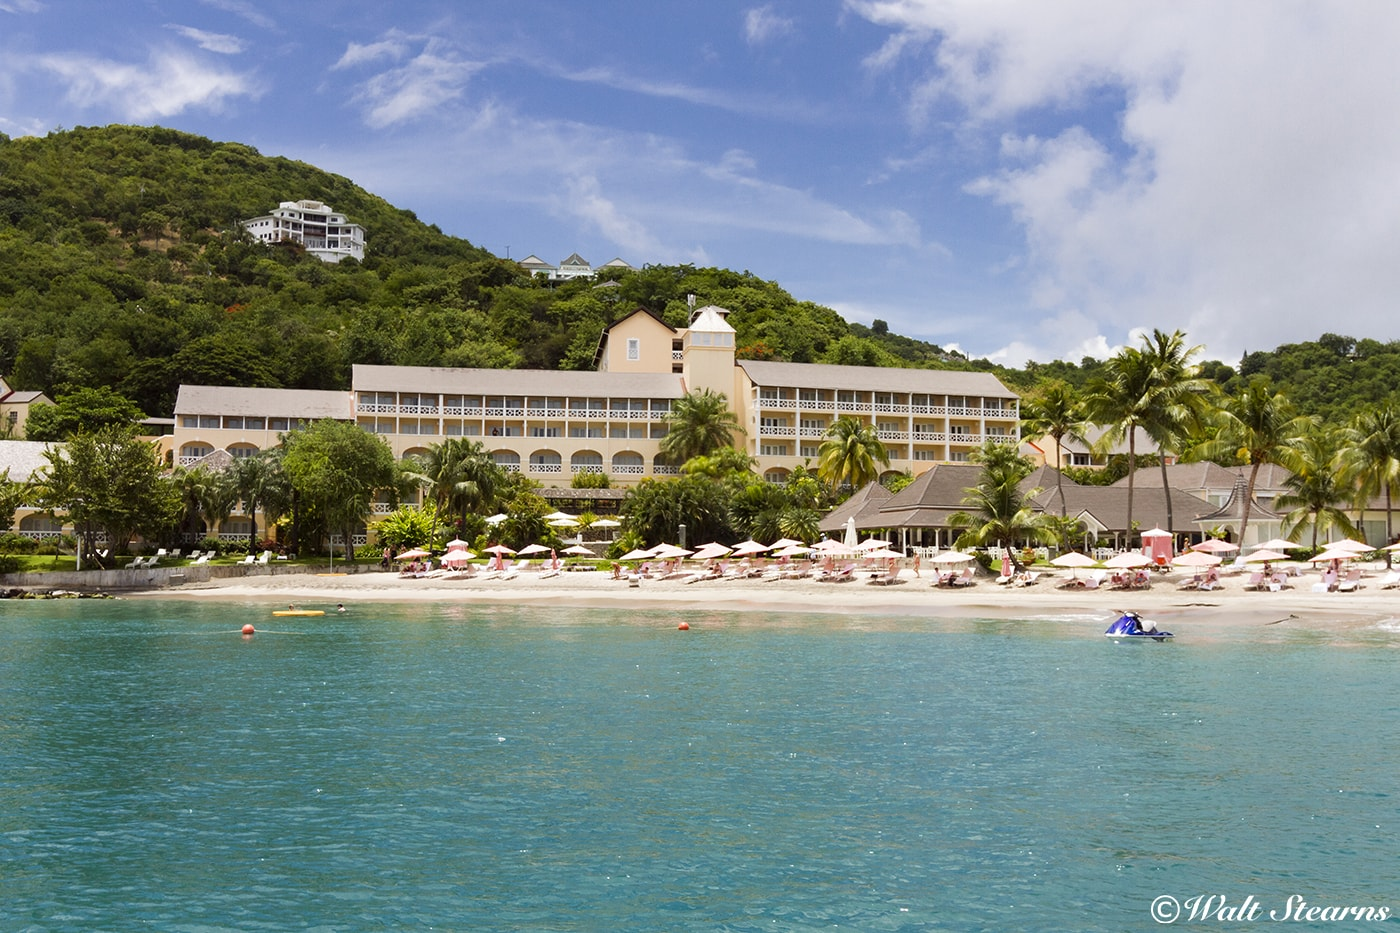 The BodyHoliday Resort overlooks a white sand beach on the northwest coast of St. Lucia. Diving and snorkeling reefs begin just offshore.